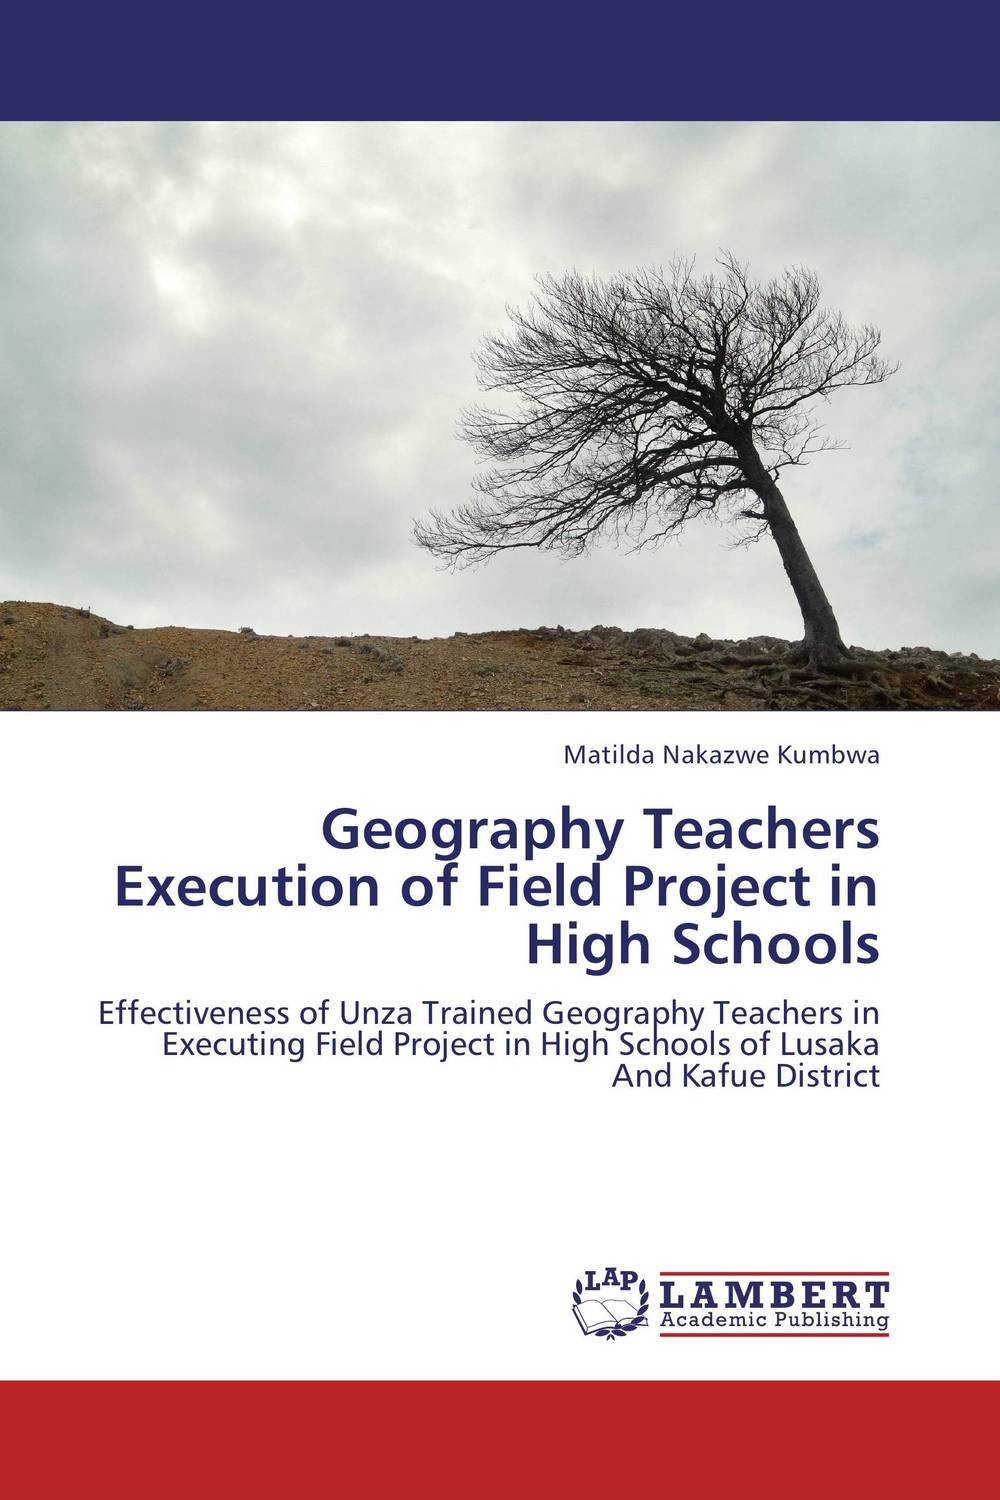 Geography Teachers Execution of Field Project in High Schools female head teachers administrative challenges in schools in kenya